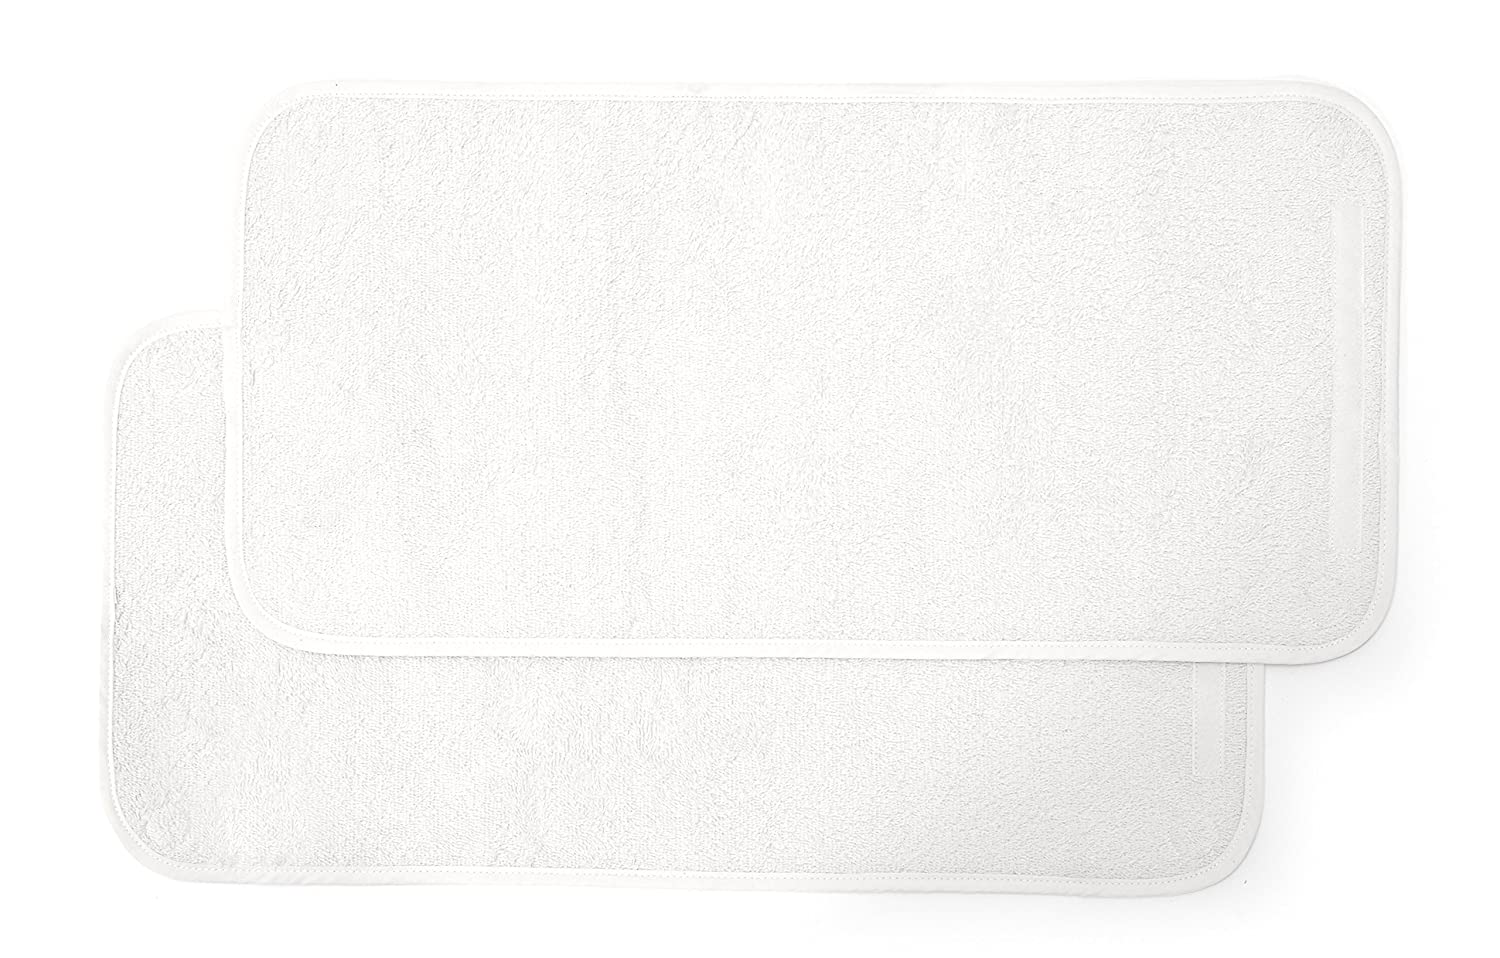 Mamas & Papas Luxury Super Soft Nappy Changing Mattress Liners - Cream Pack of Two 566303400